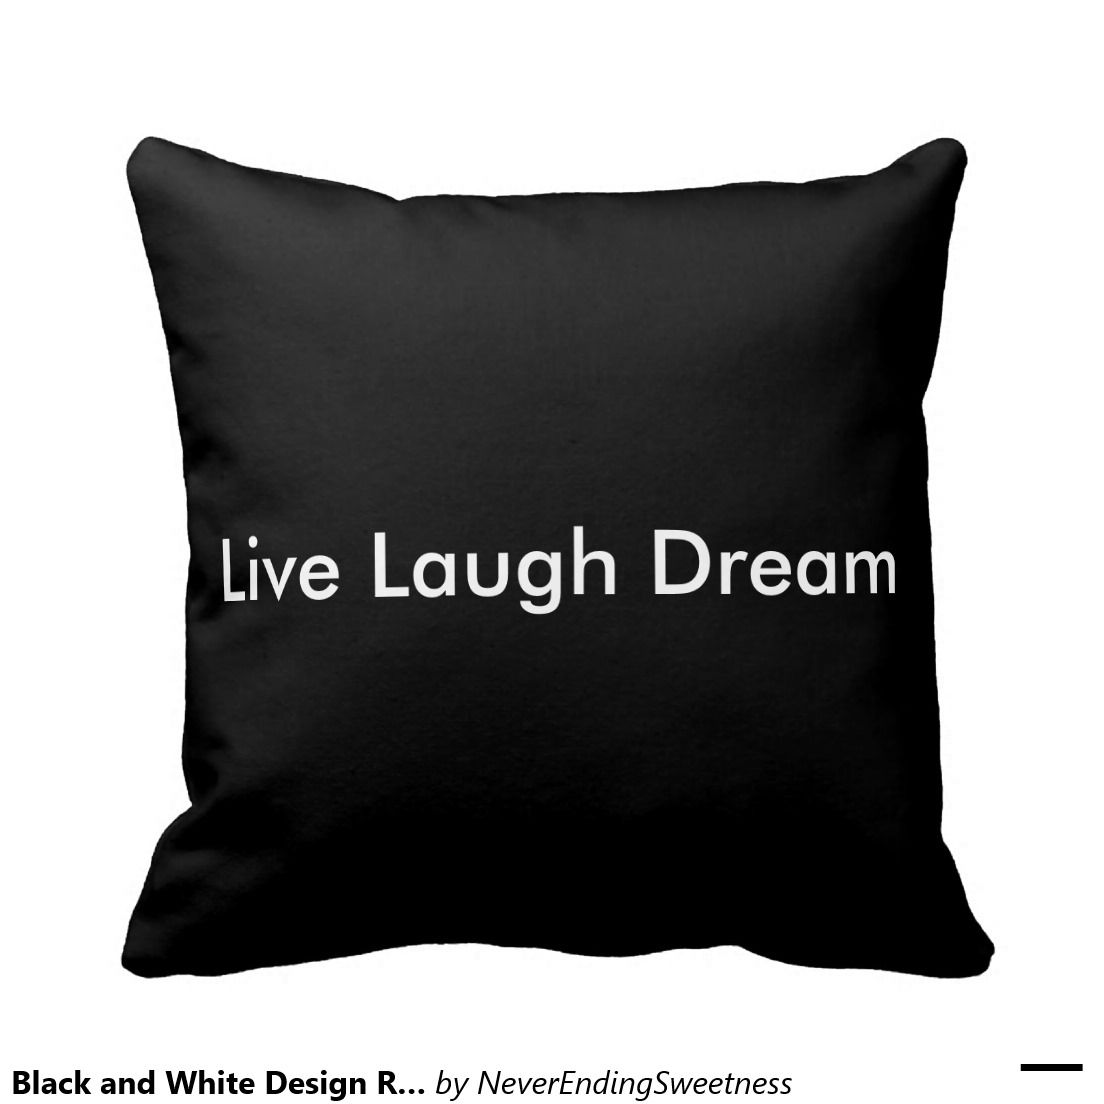 Black and White Design Reversible pillow